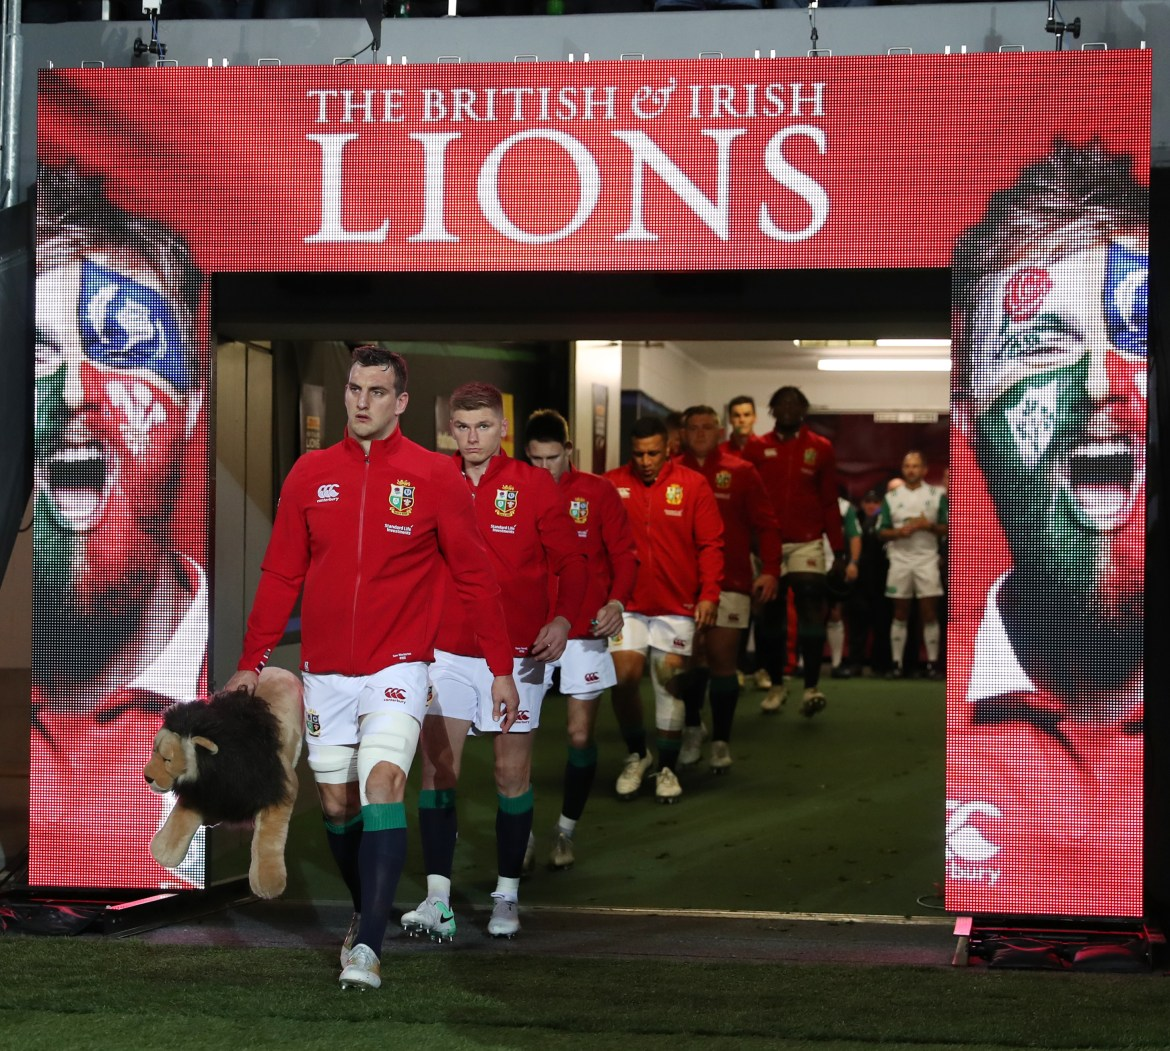 The Lions are hoping to salvage their summer tour